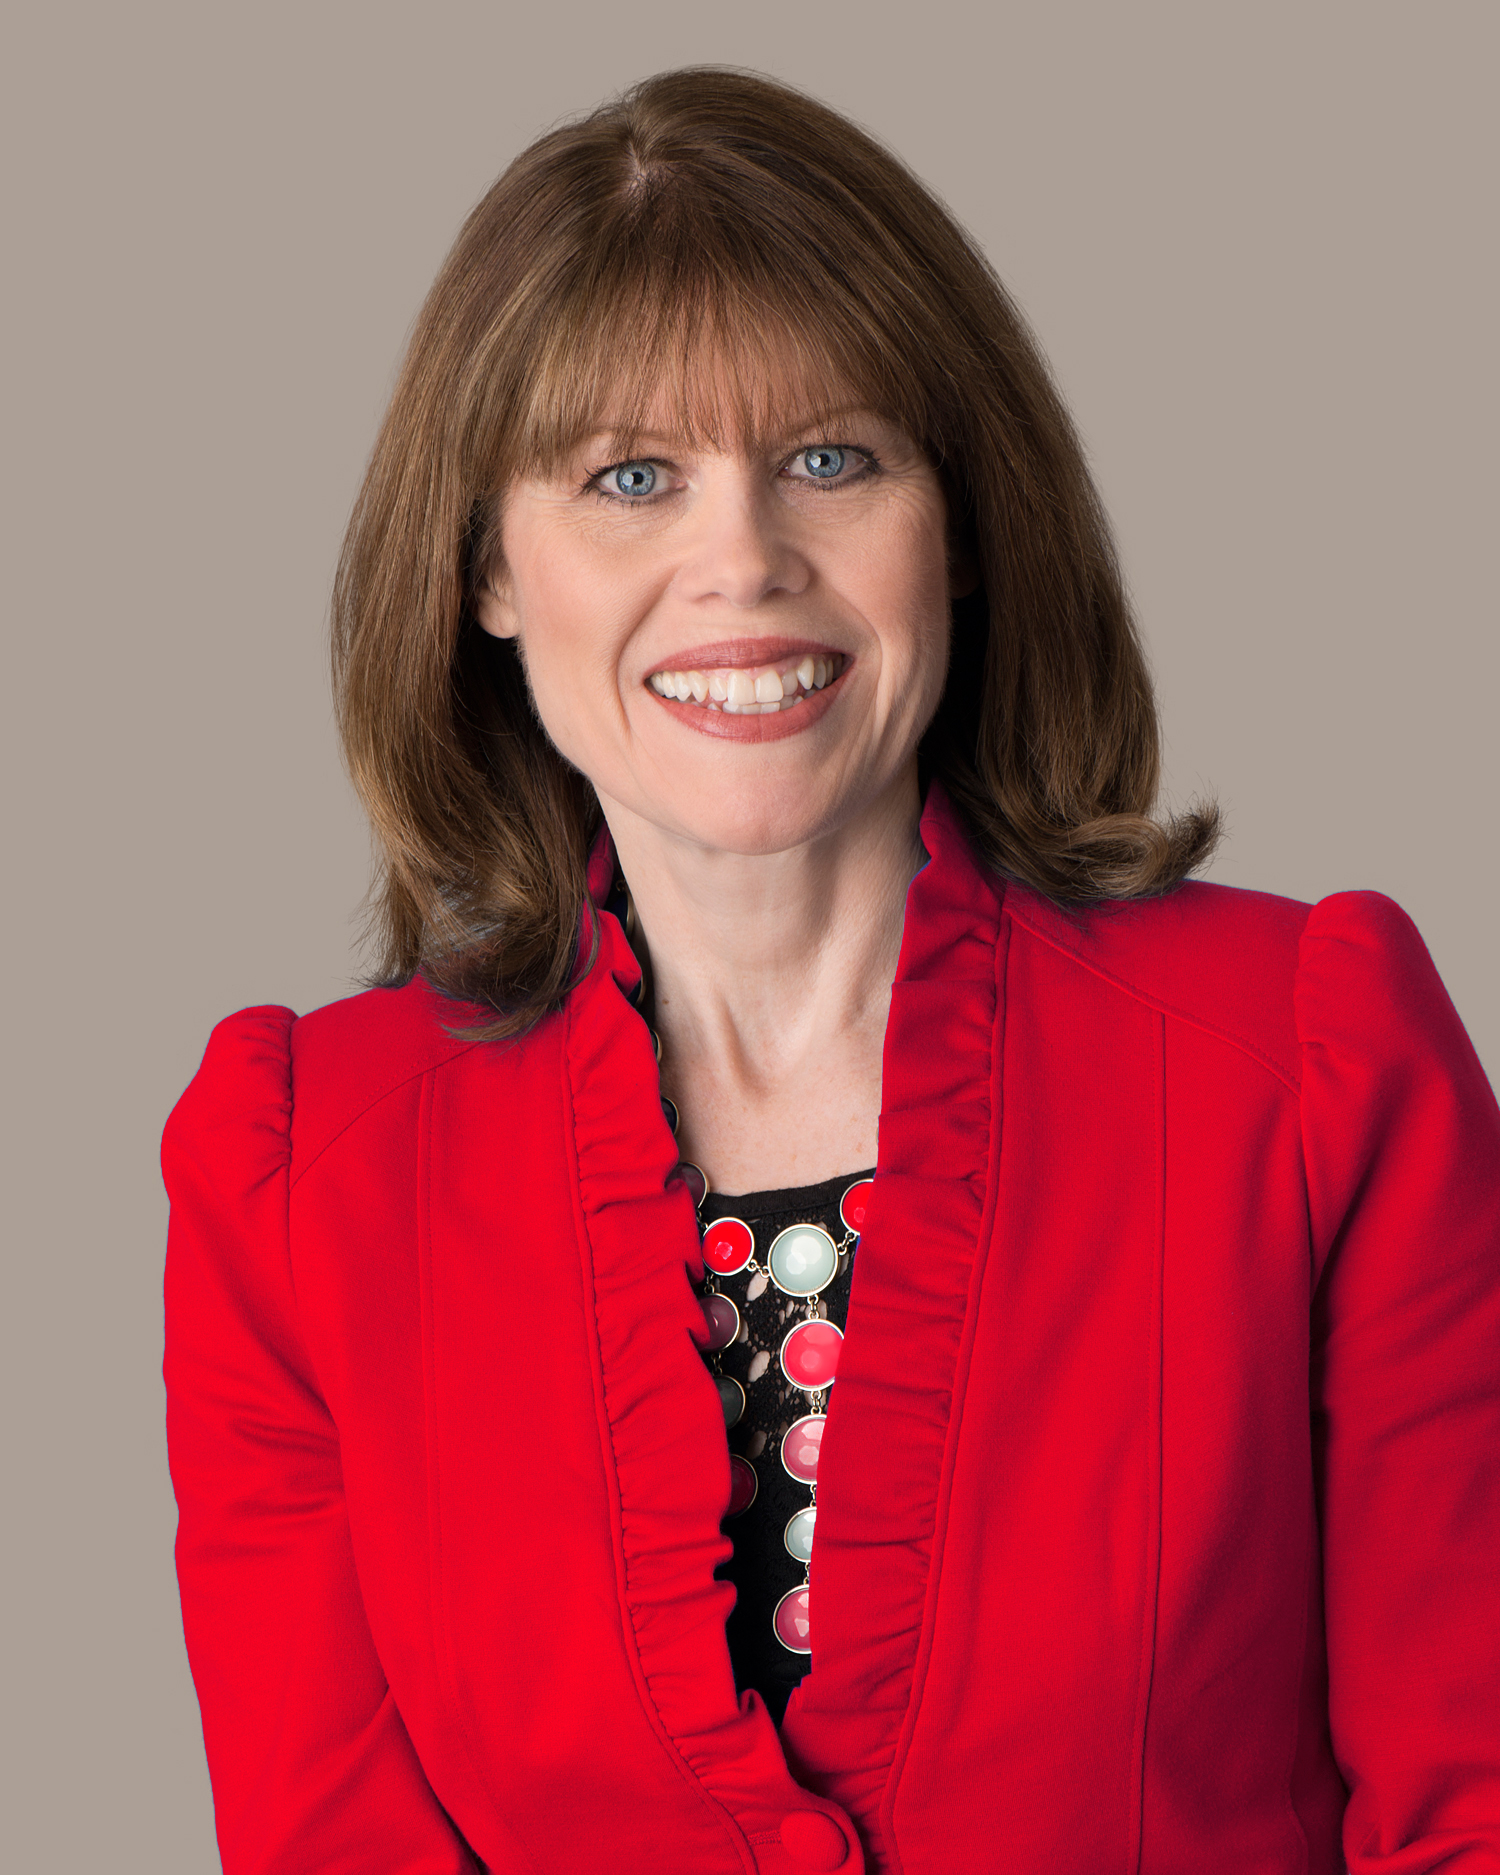 Nancy Brown, CEO of the American Heart Association